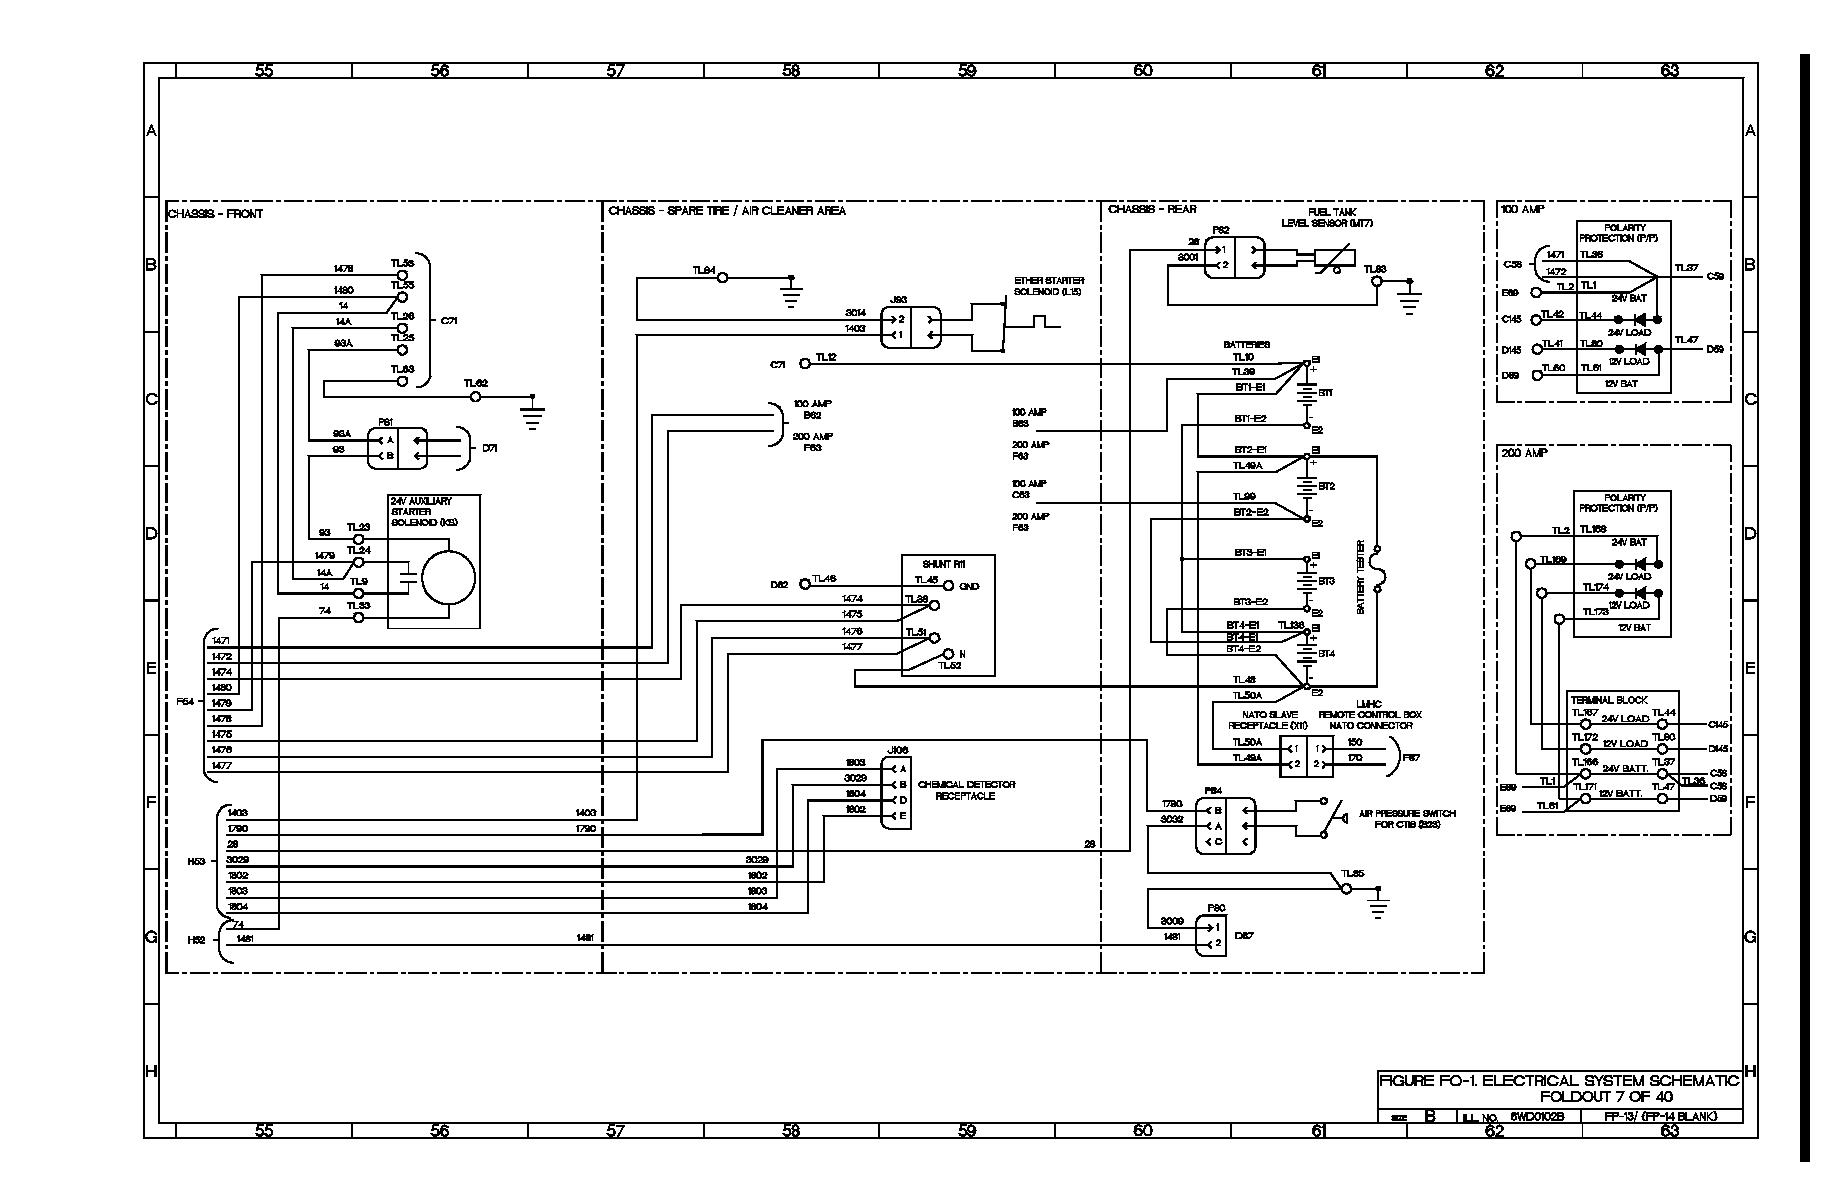 Figure Fo 1 Electrical System Schematic Foldout 7 Of 40